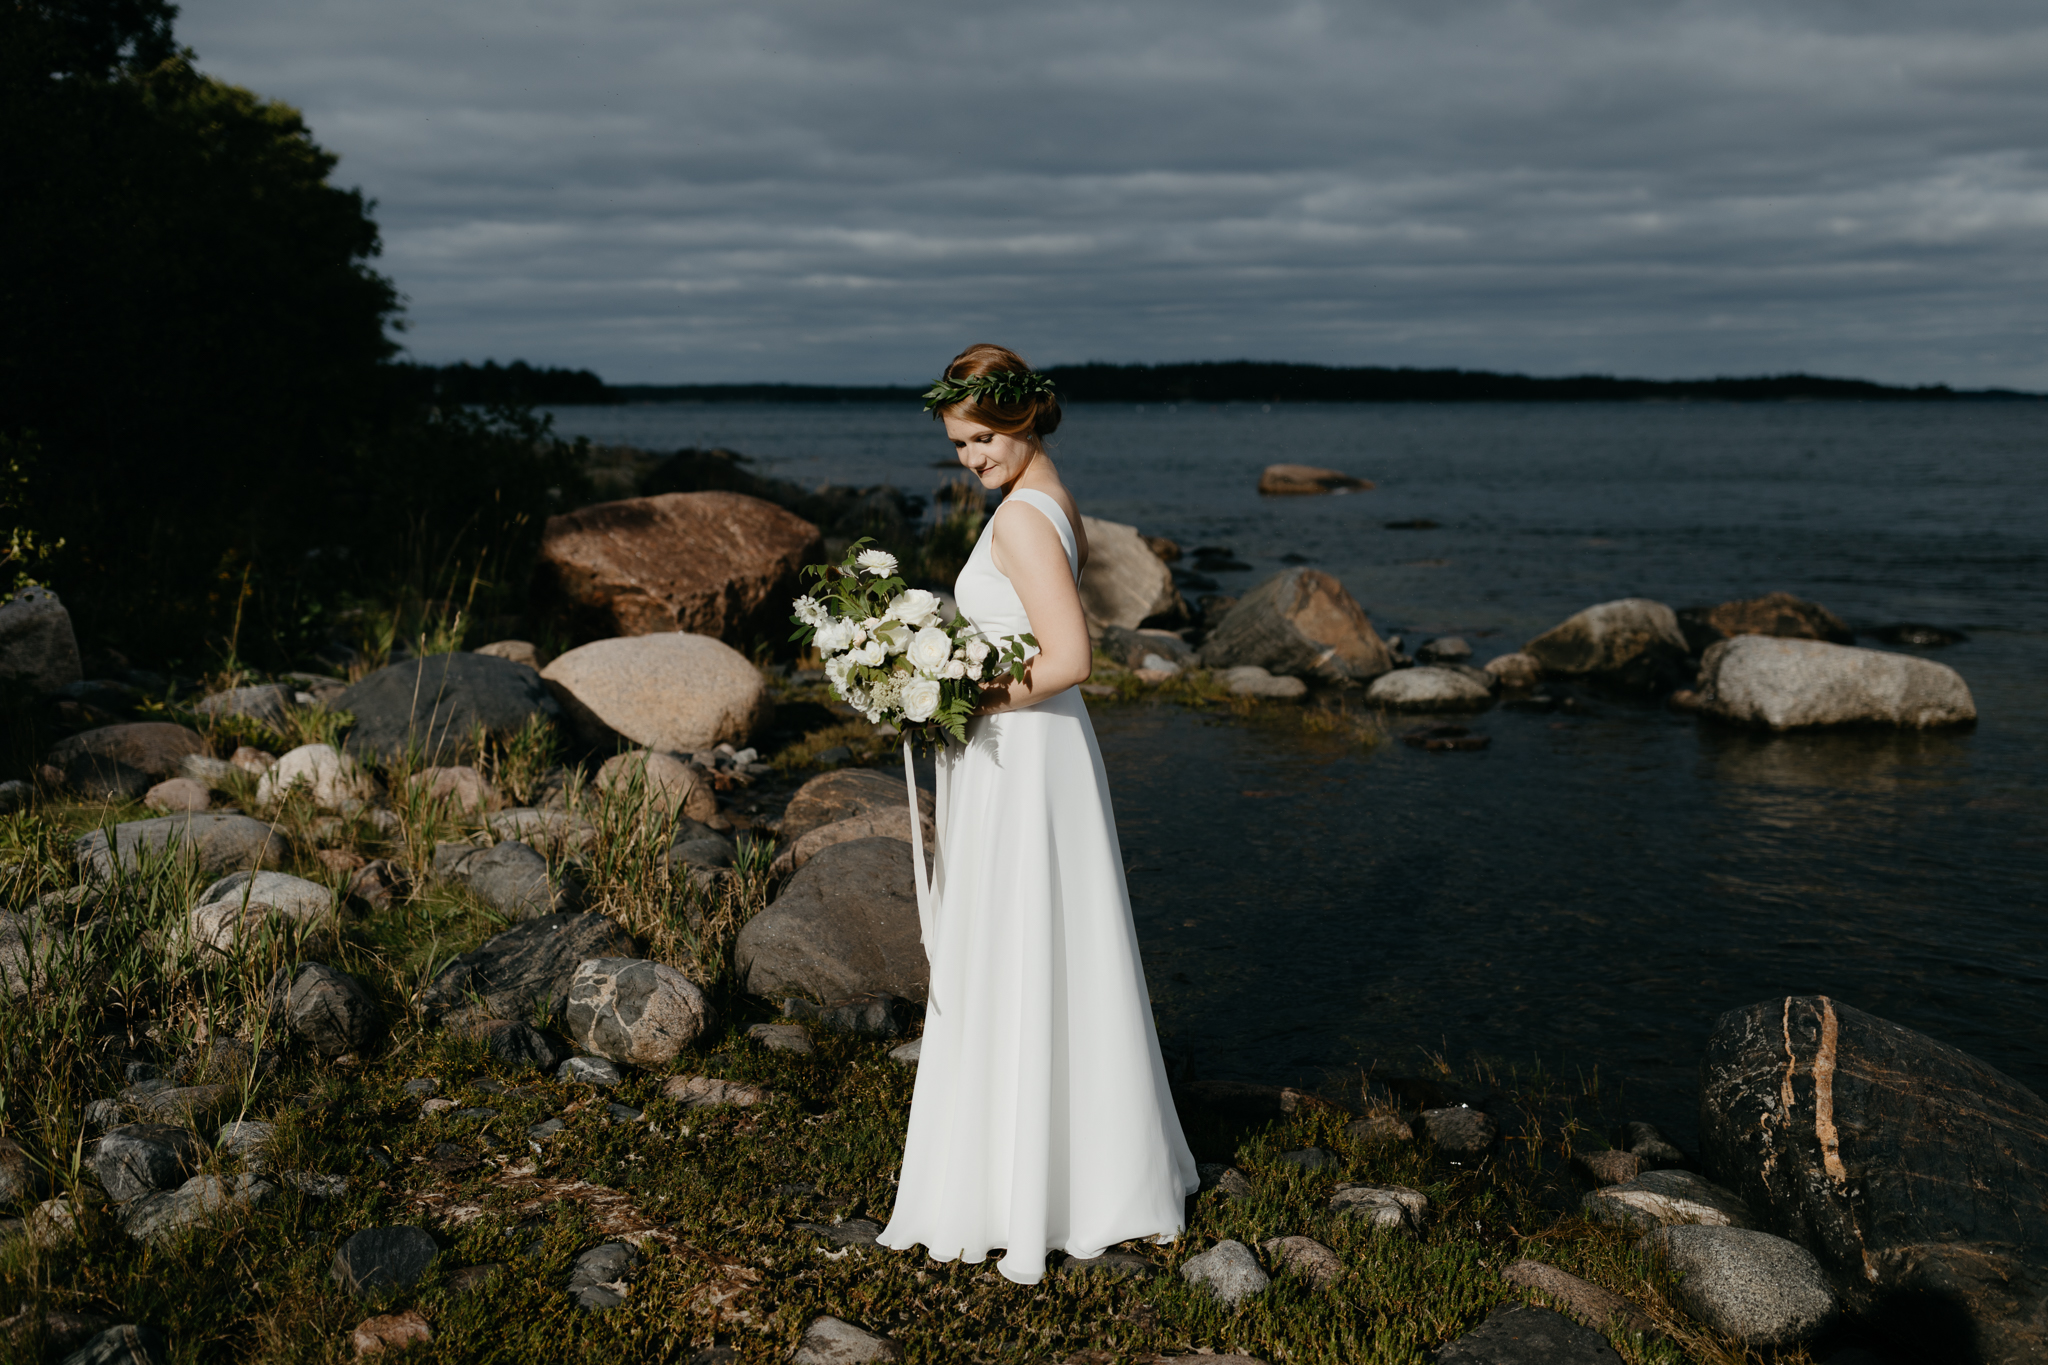 Vilhelmiina + Mark | Photo by Patrick Karkkolainen Wedding Photographer | Helsinki Wedding Photographer-161.jpg